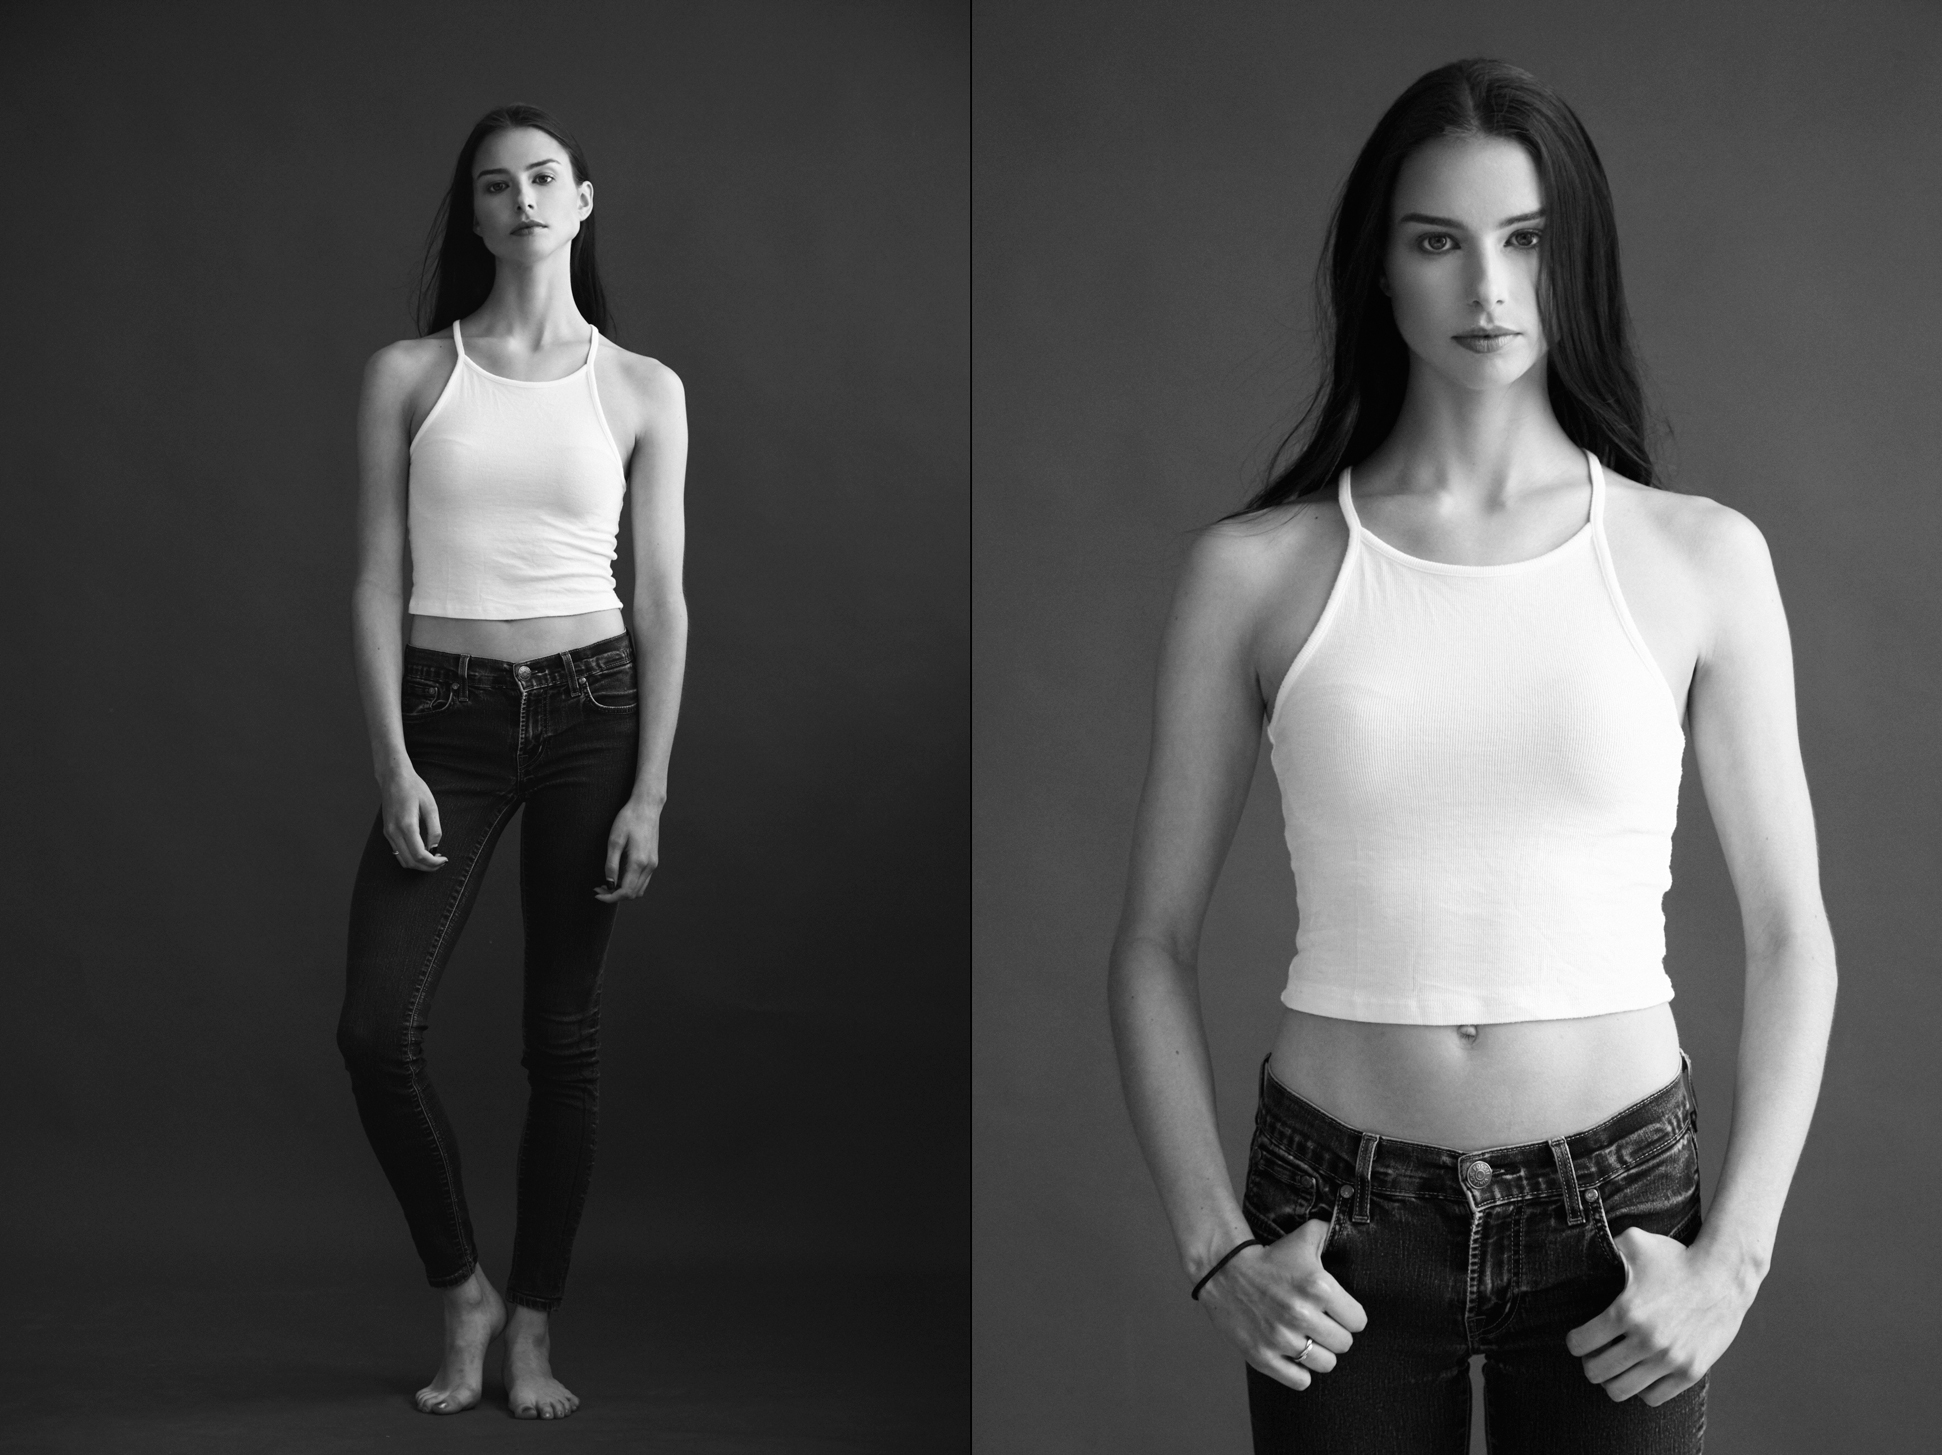 Michael Populus Photography photographs Colette Duplantier of Kennedy Models